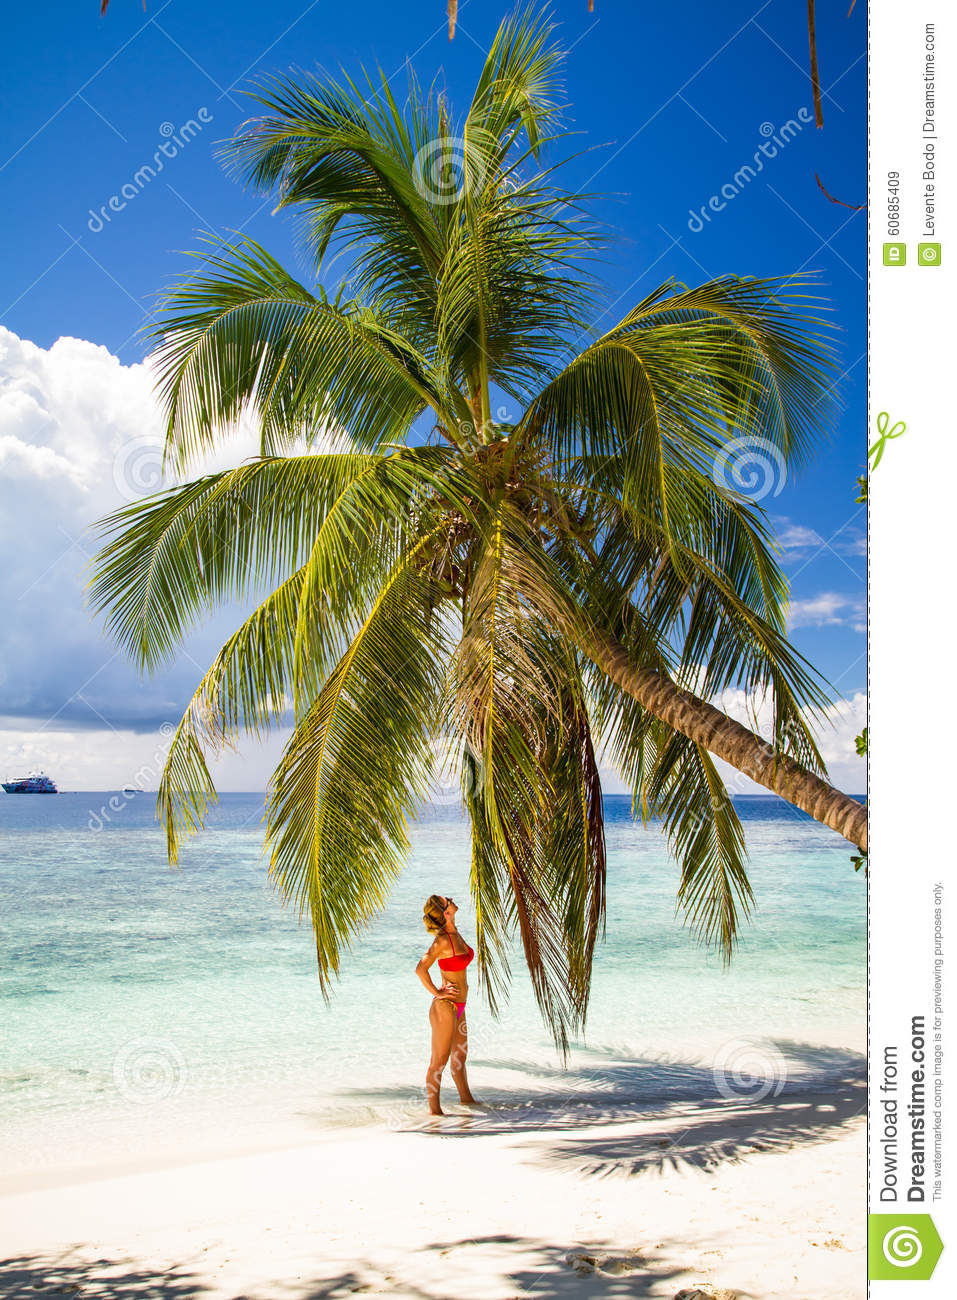 Woman Relaxing Under Palm Tree In Tropical Island Stock